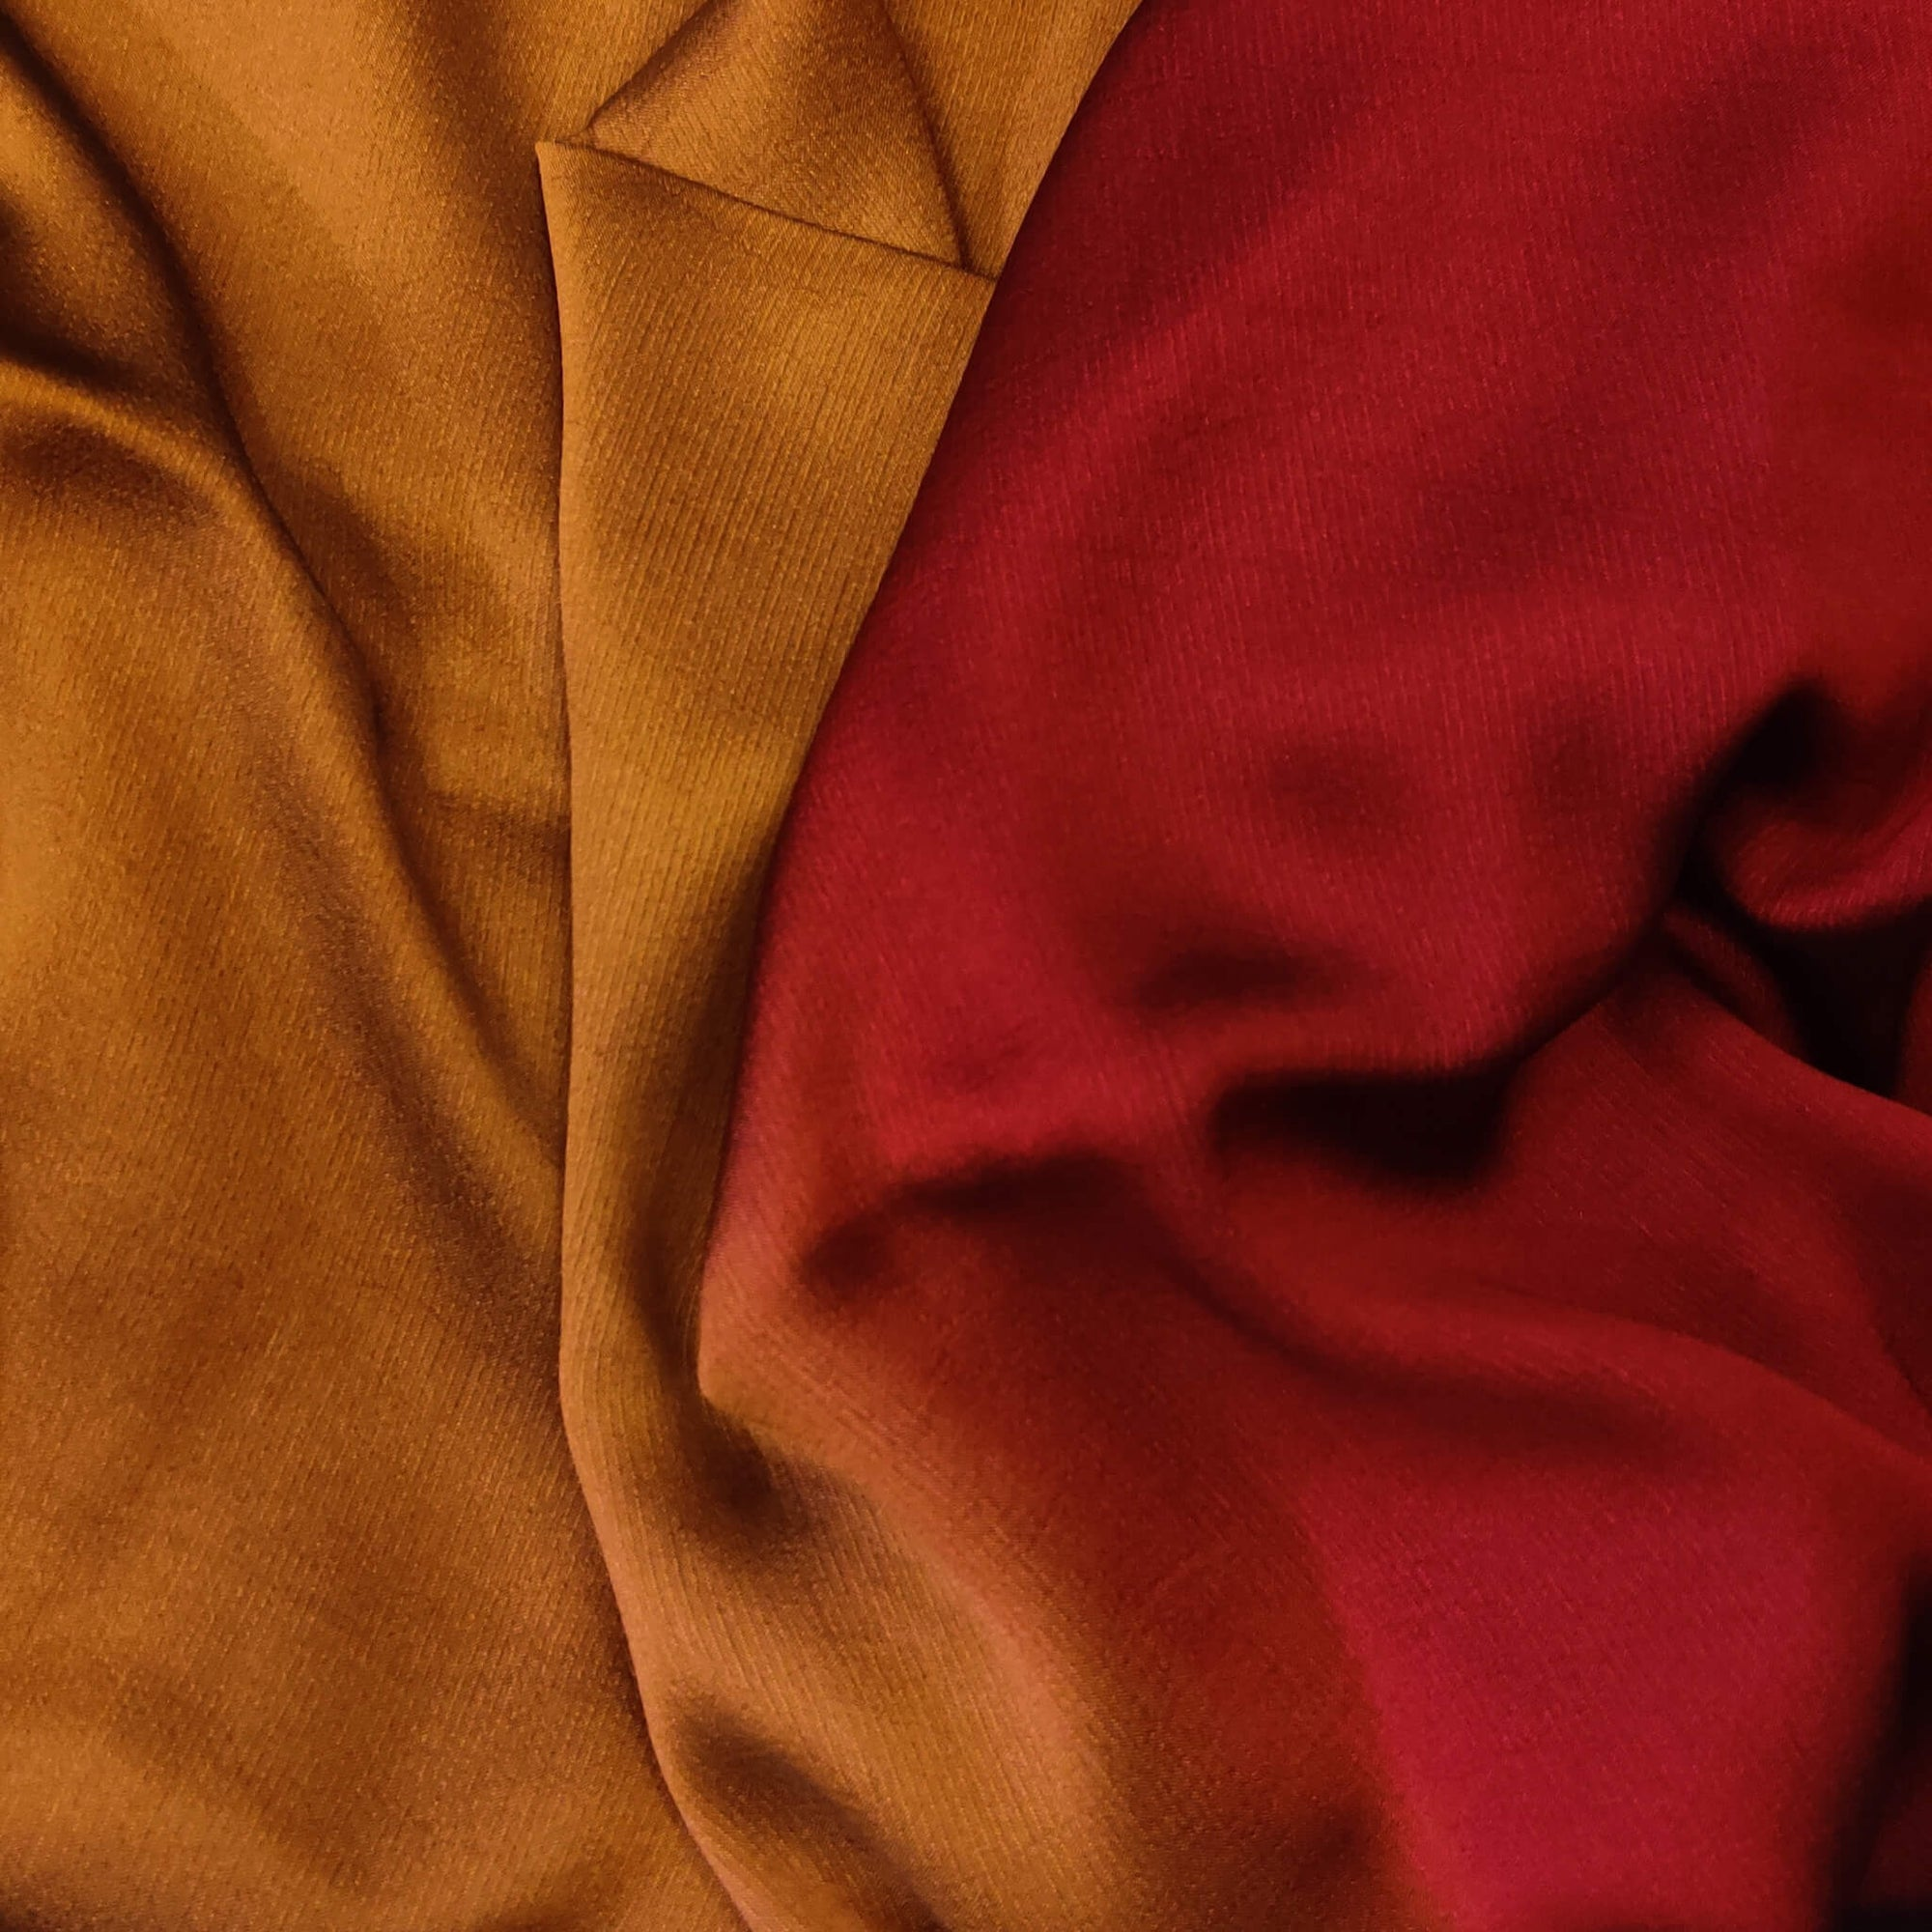 Shaded Brown And Maroon Harmony Chiffon Flowing Fabric